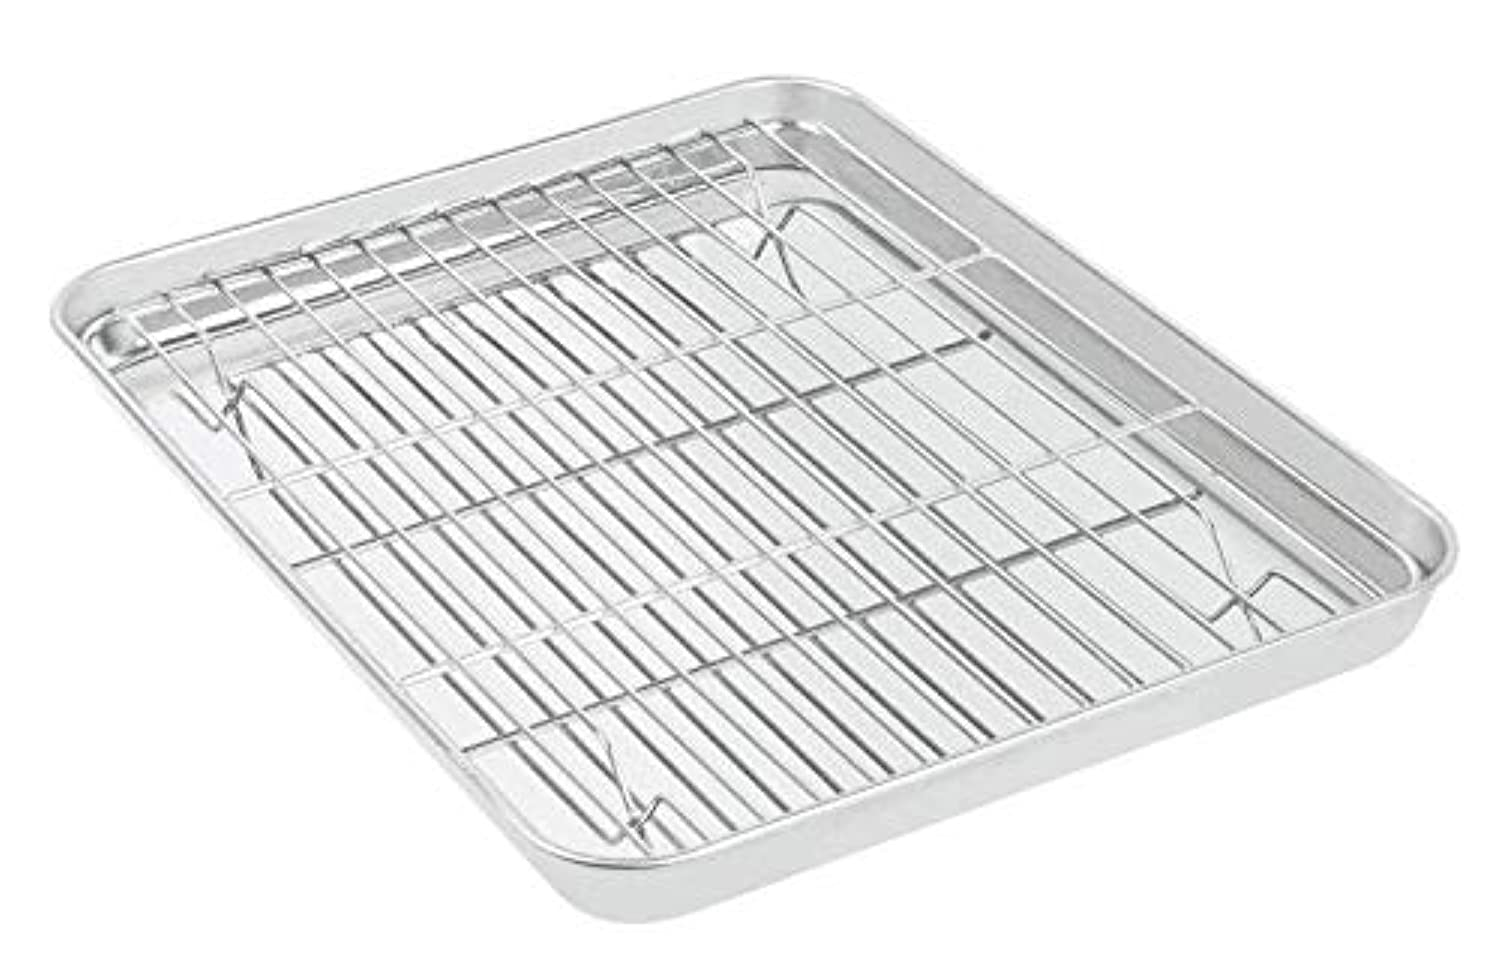 Momugs Baking Sheet with Wire Rack Set - 12.5 X 9.5 inch Stainless Steel Heavy Duty Baking Pan with Cooling Roasting Rack for Cookies, Cakes, Breads - Metal Tray & Rack Are Dishwasher Safe